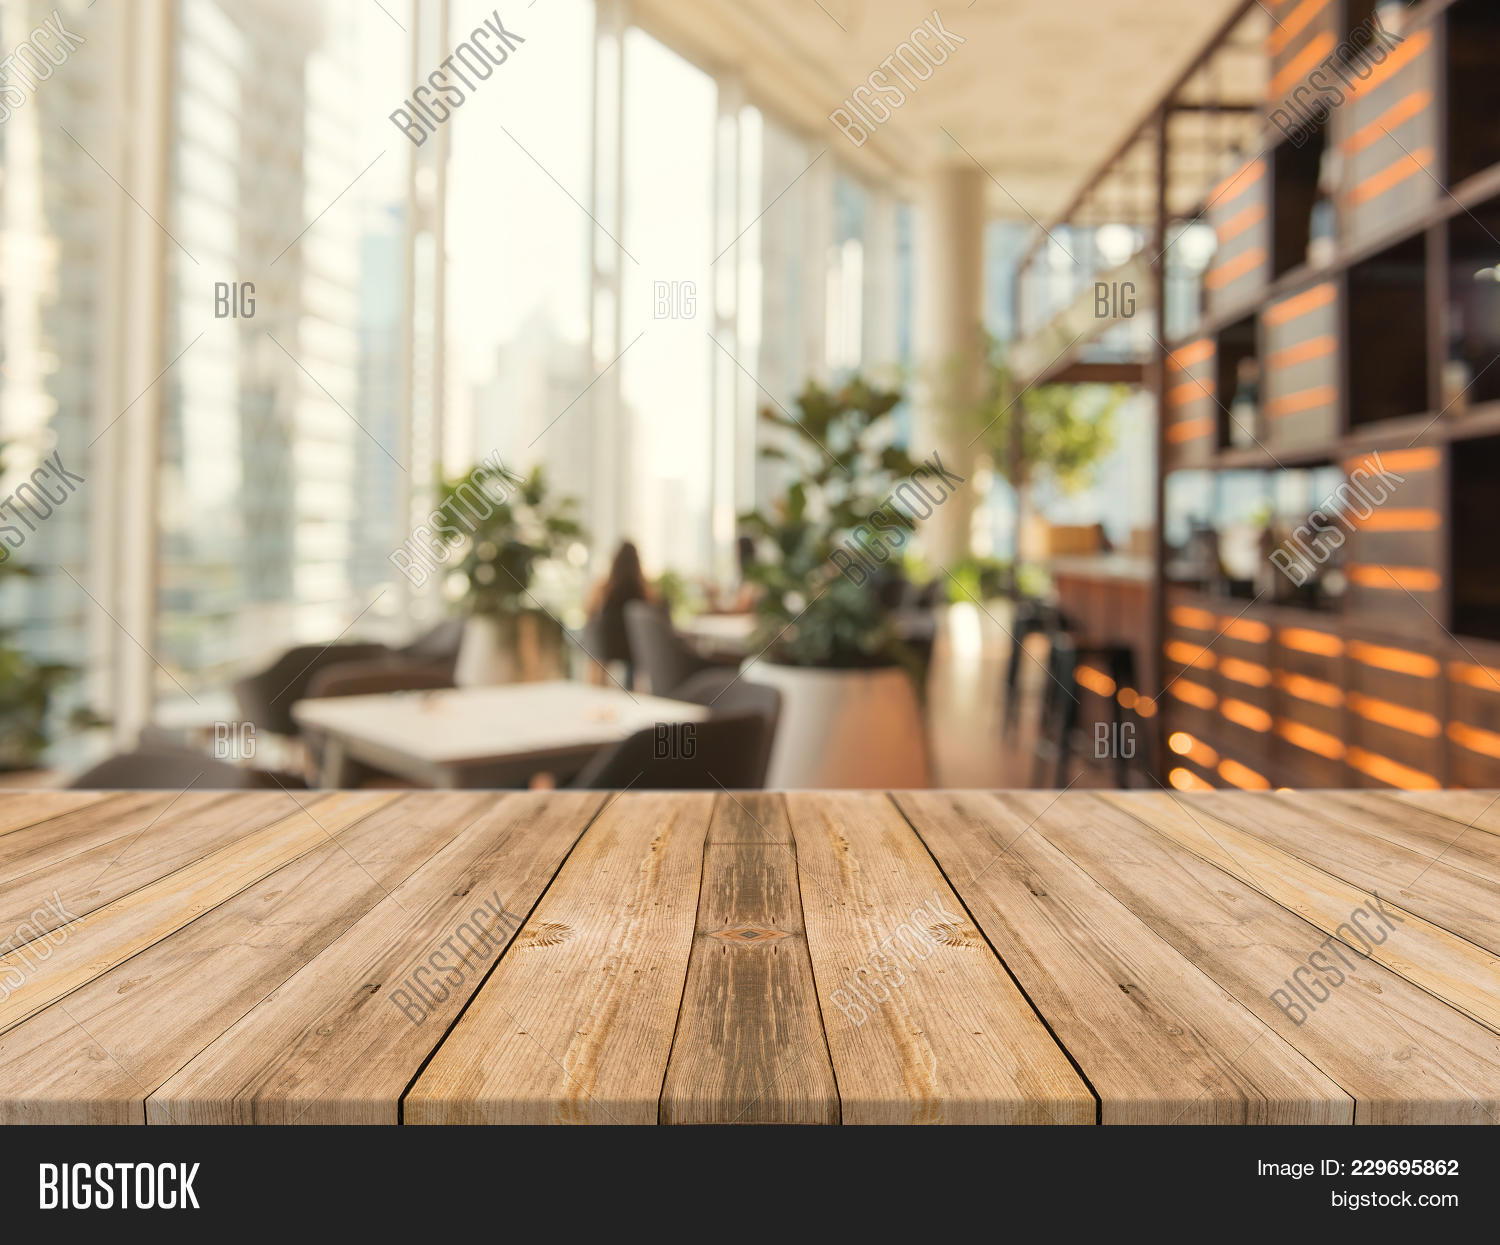 abstract,advertise,backdrop,background,blank,blur,blurred,bokeh,building,business,cafe,coffee,counter,dark,decoration,defocused,design,desk,display,empty,food,hardwood,home,interior,kitchen,mall,mock,old,order,perspectives,product,restaurant,retail,room,shelf,shop,space,store,surface,table,tabletop,template,texture,timbered,top,up,wall,window,wood,wooden